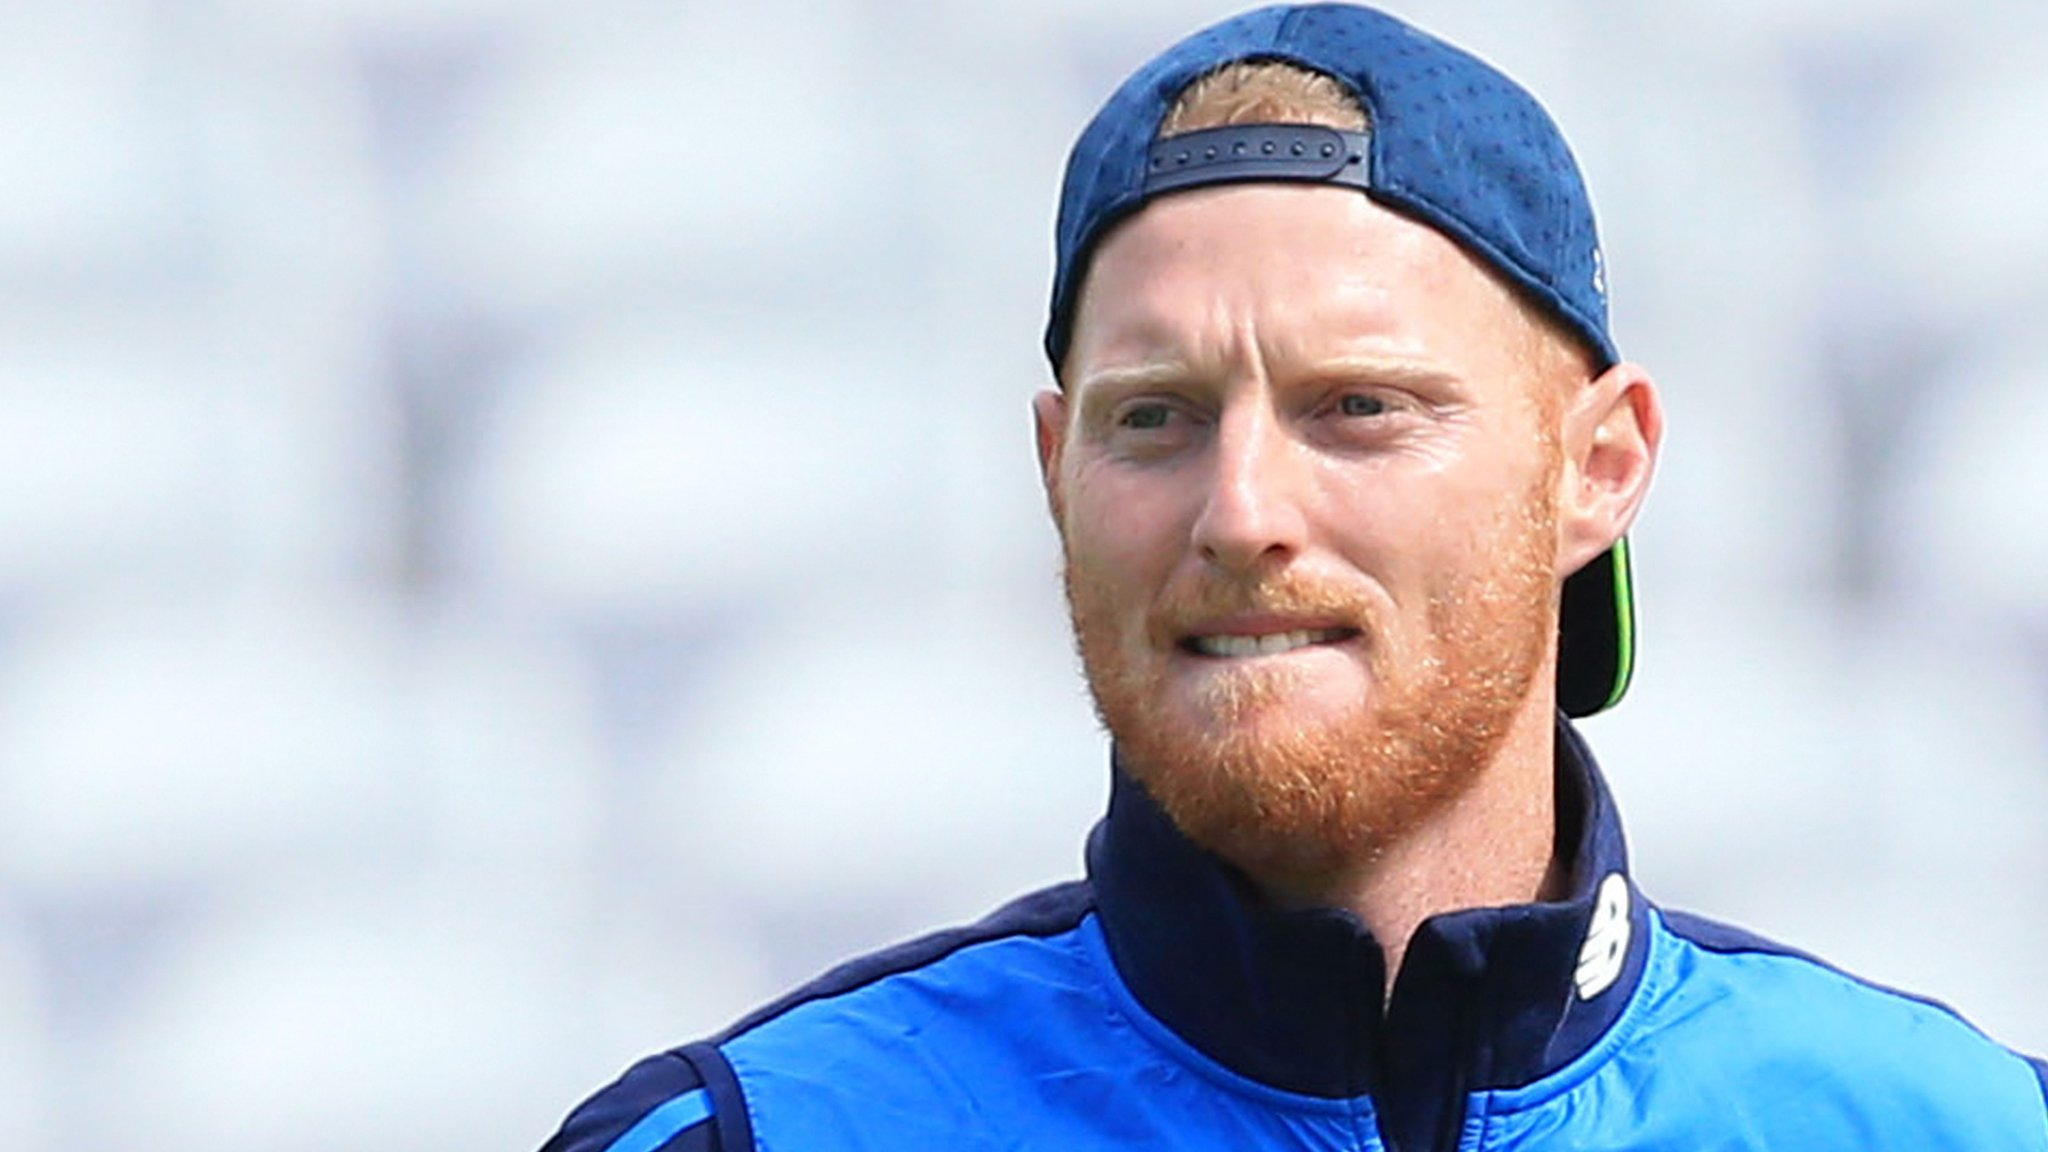 England all-rounder Stokes 'desperate' to move on - captain Root